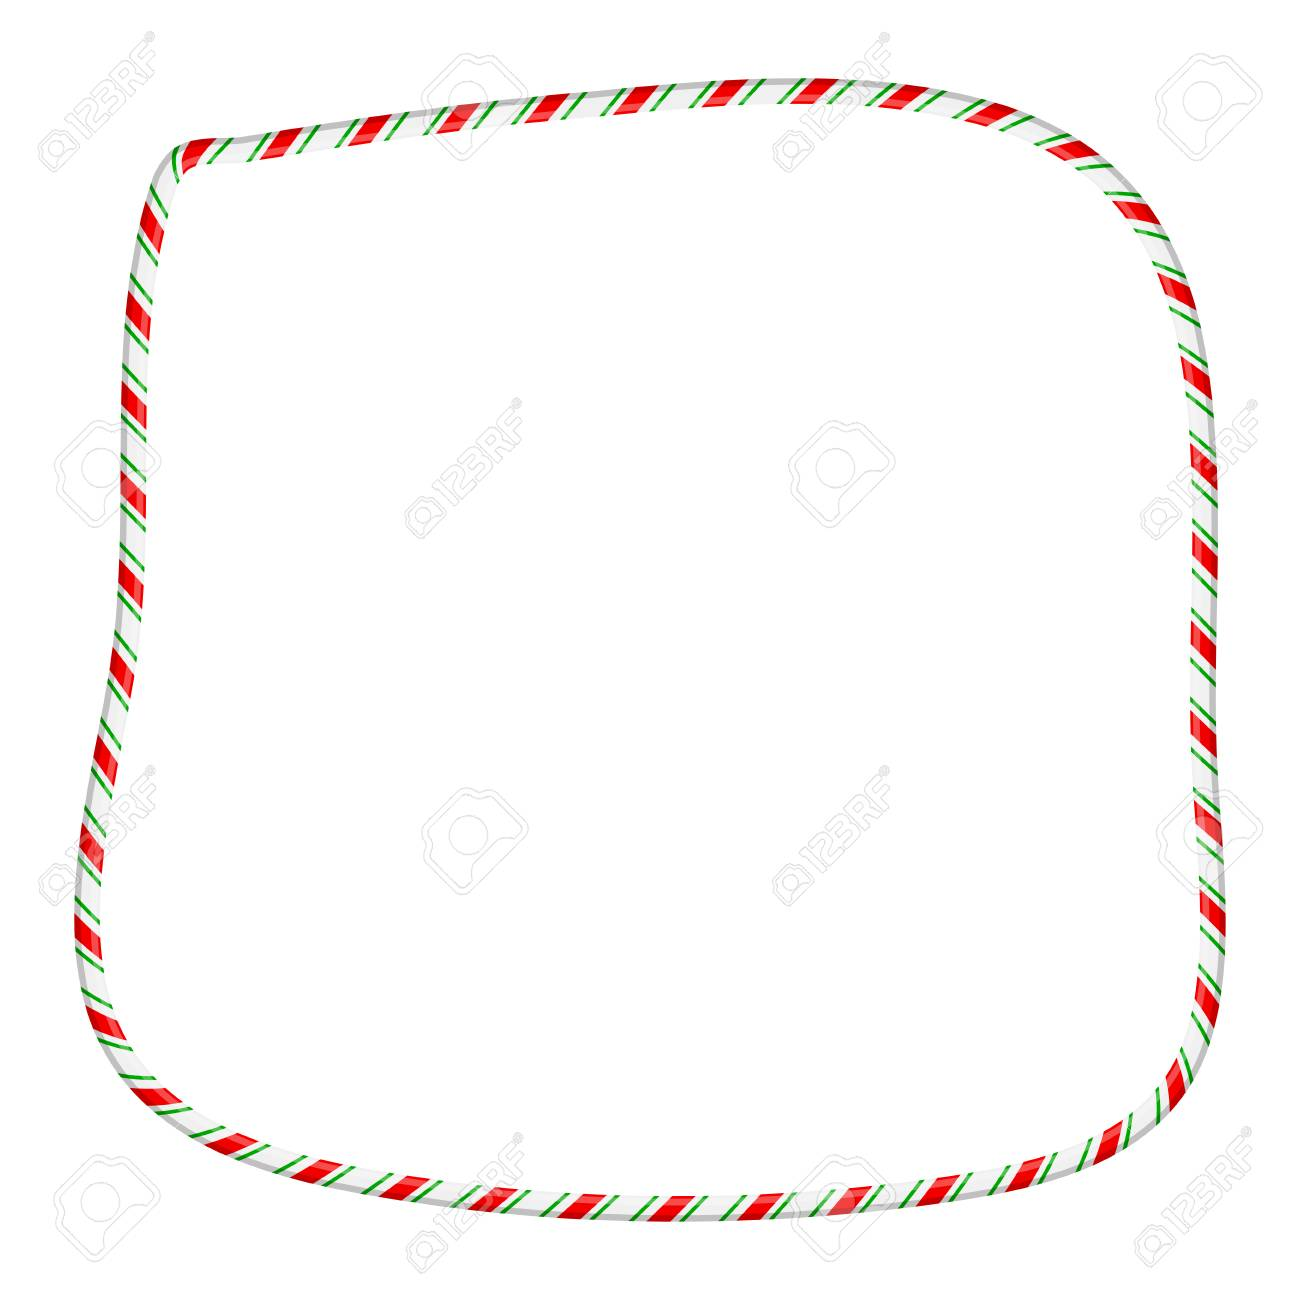 hight resolution of candy cane frame border for christmas design isolated on white background stock vector 91605926